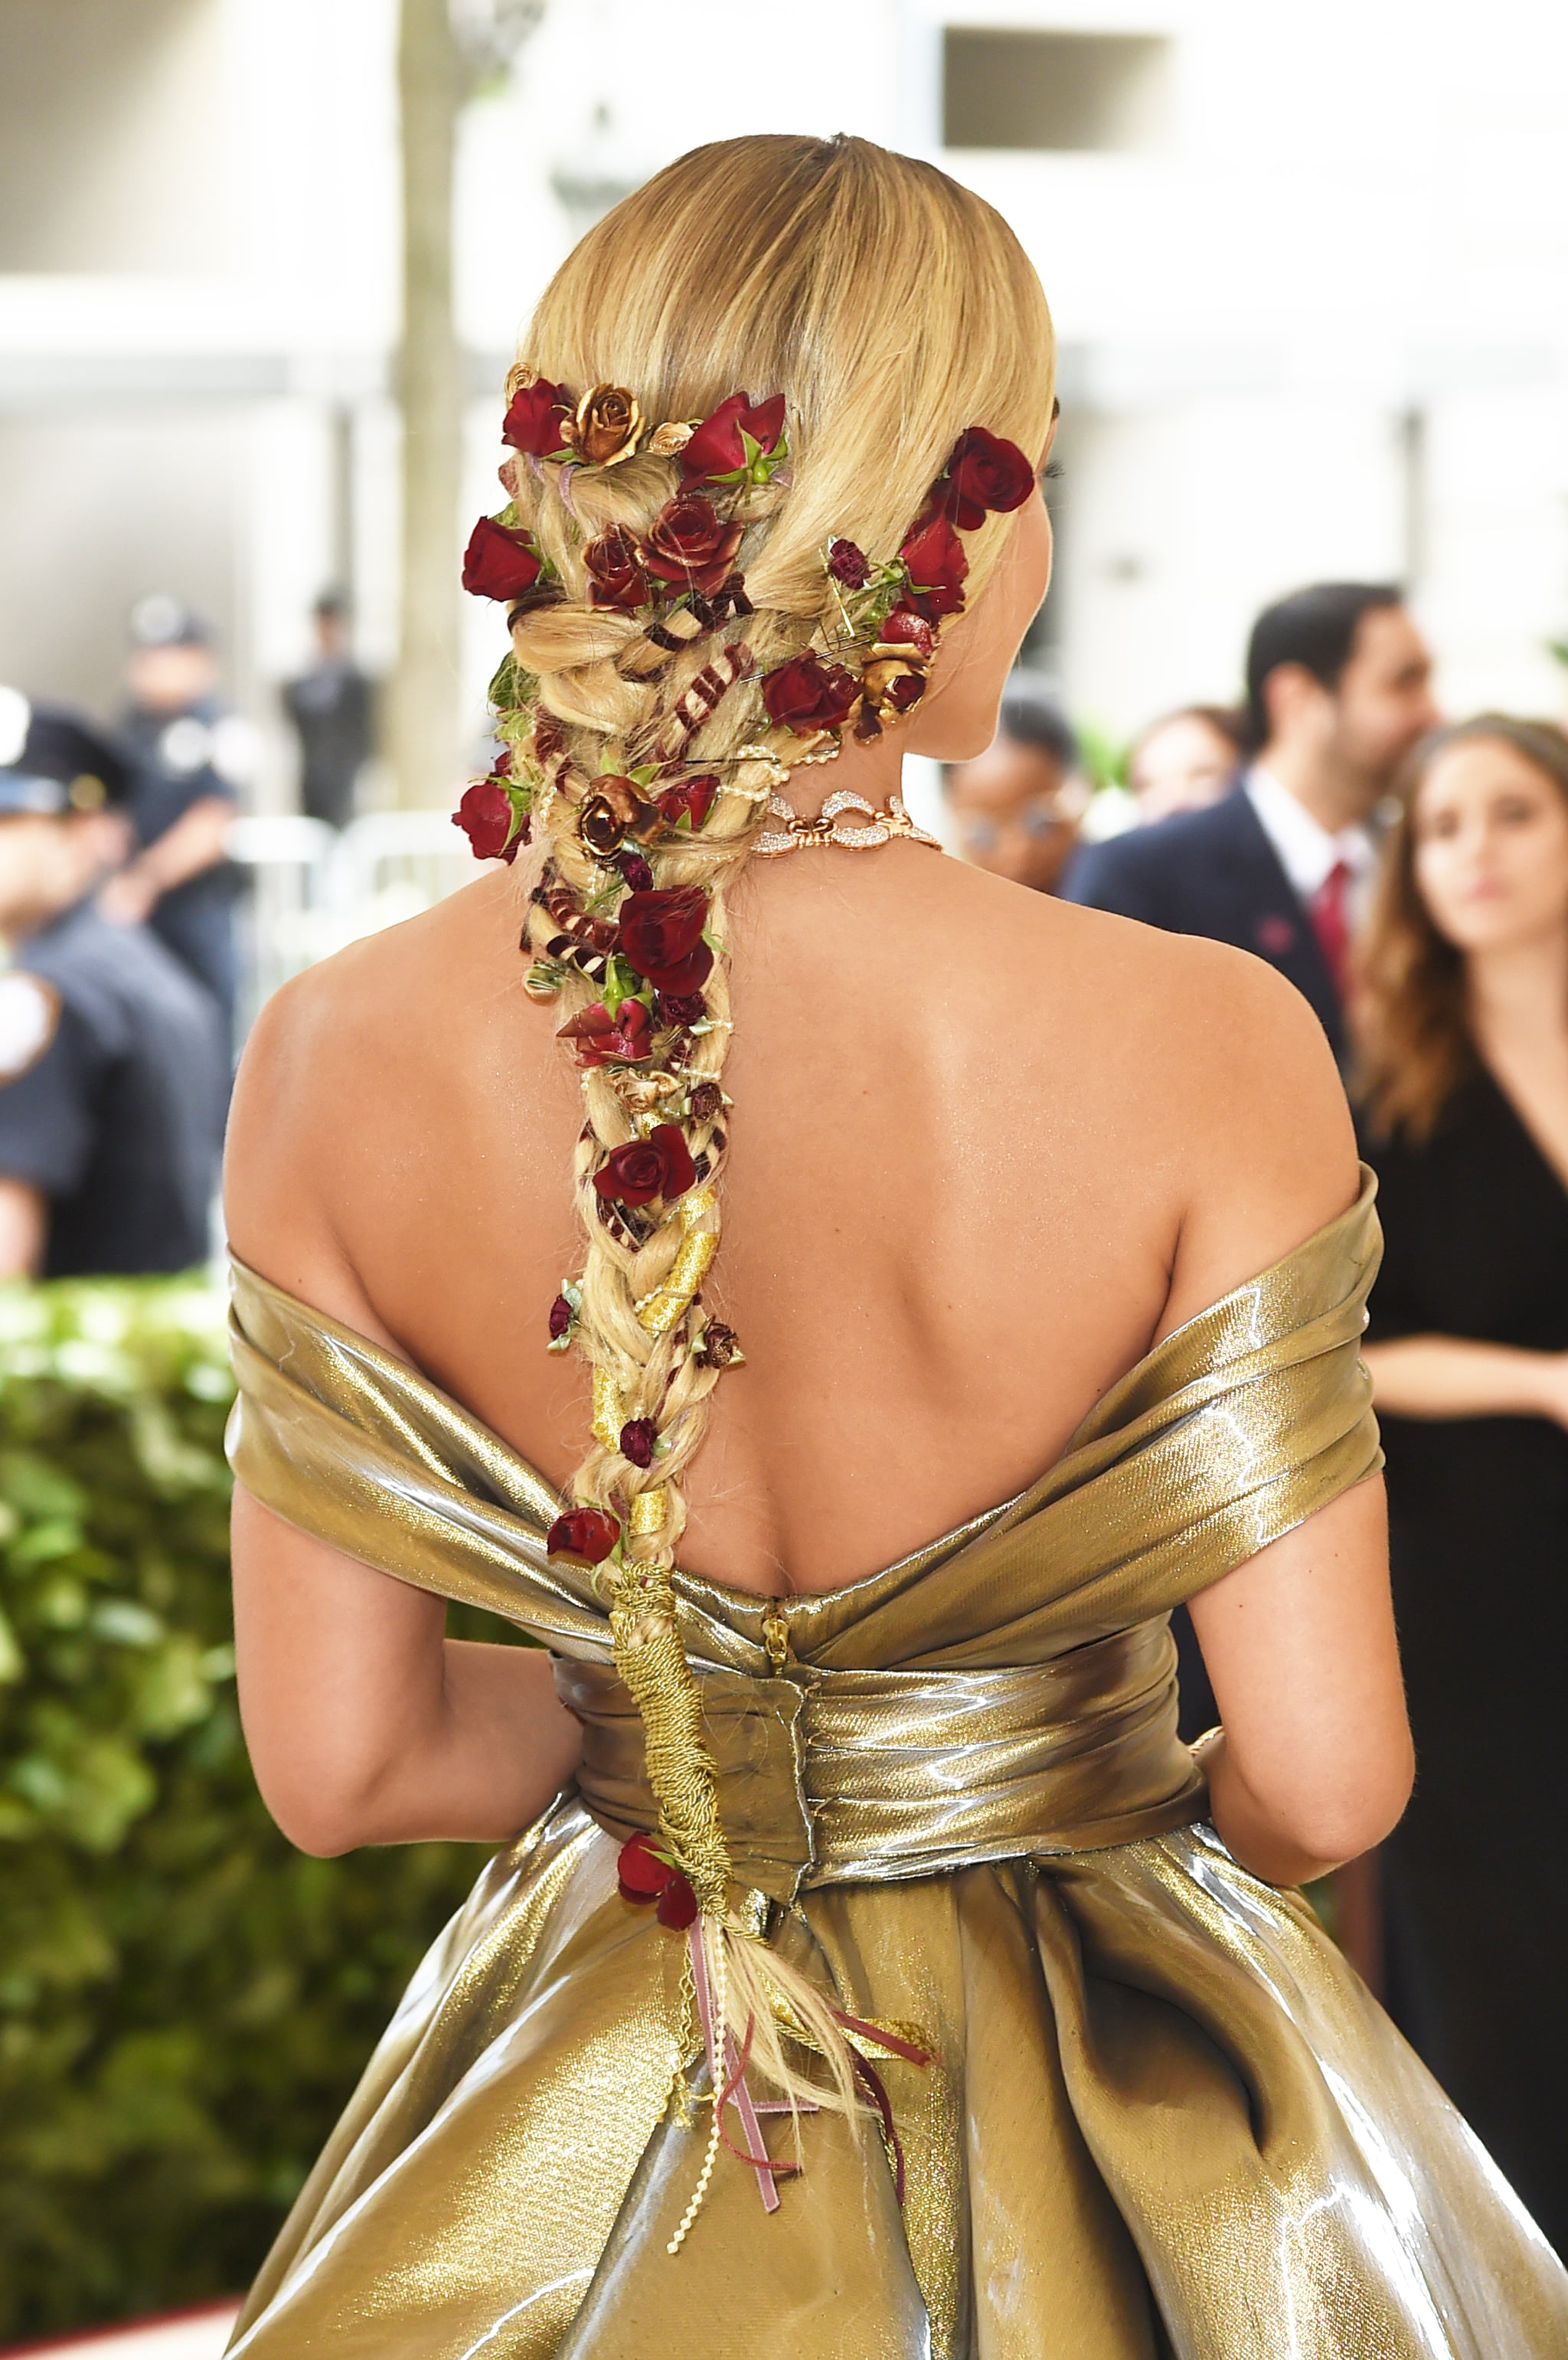 What Does The Rose Mean At The Met Gala 2018 Popsugar